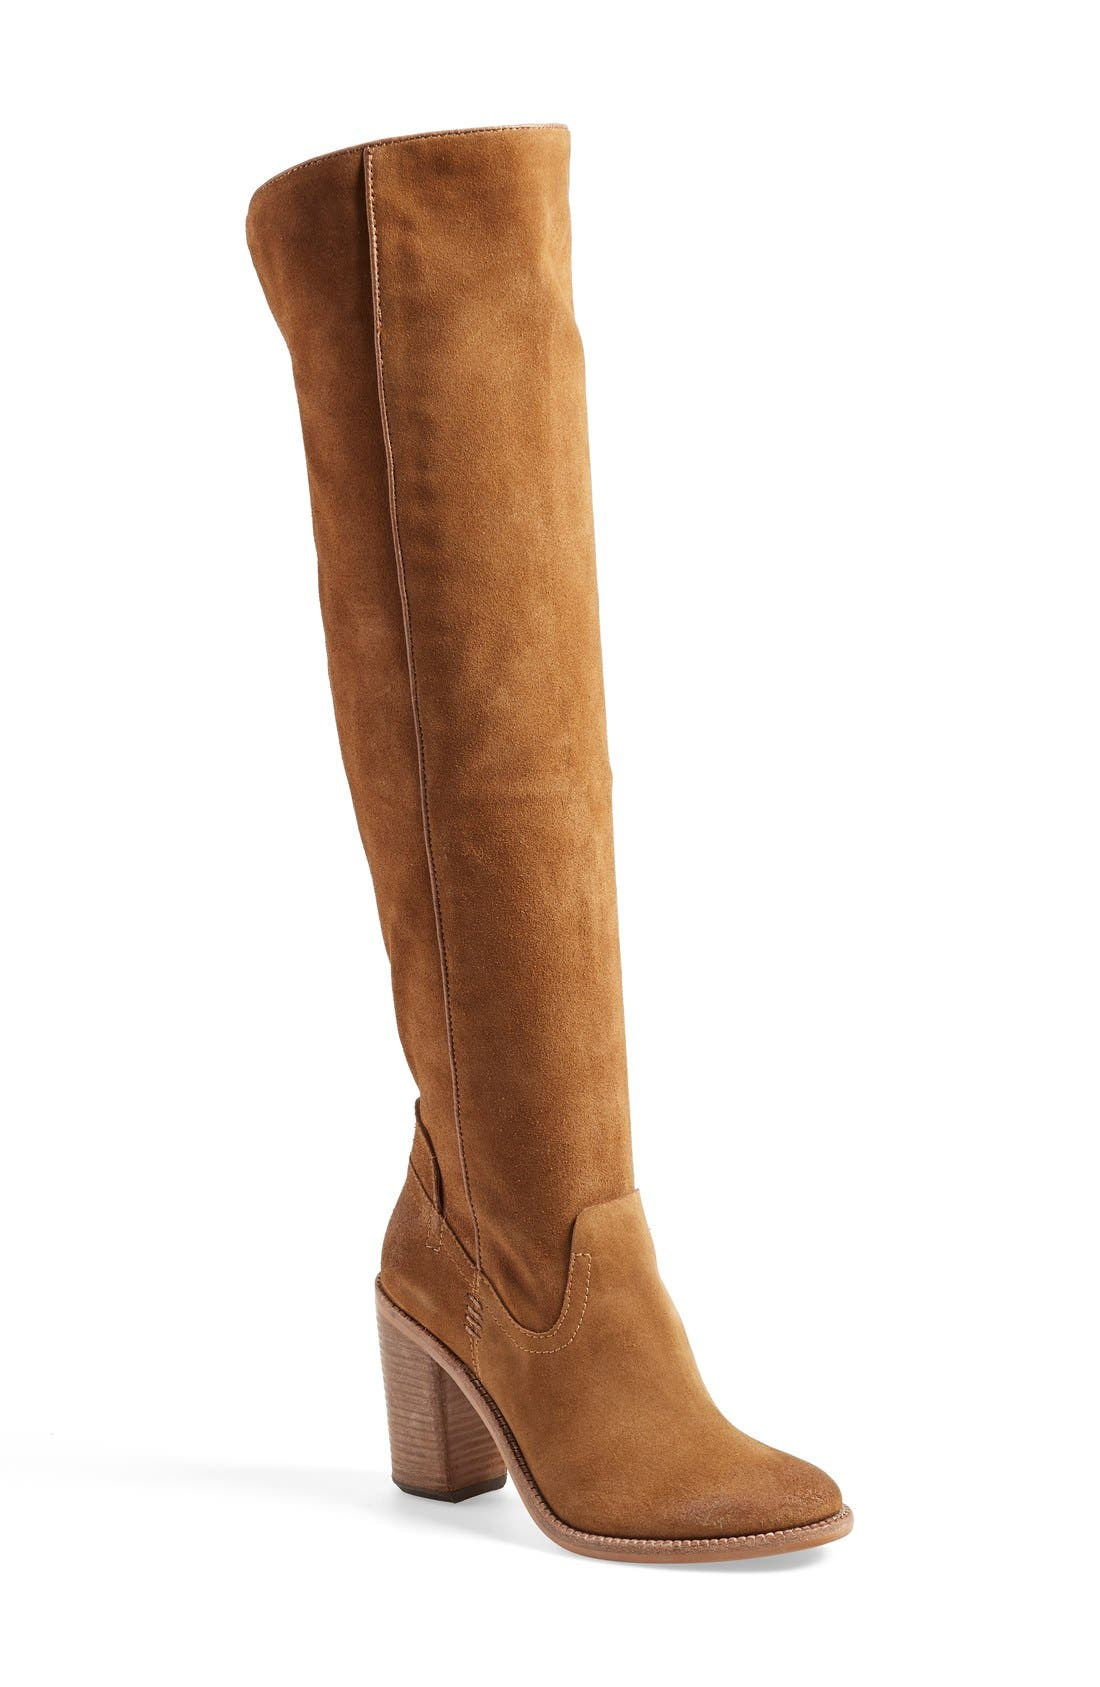 Alternate Image 1 Selected - Dolce Vita 'Ohanna' Over the Knee Boot (Women) (Nordstrom Exclusive)